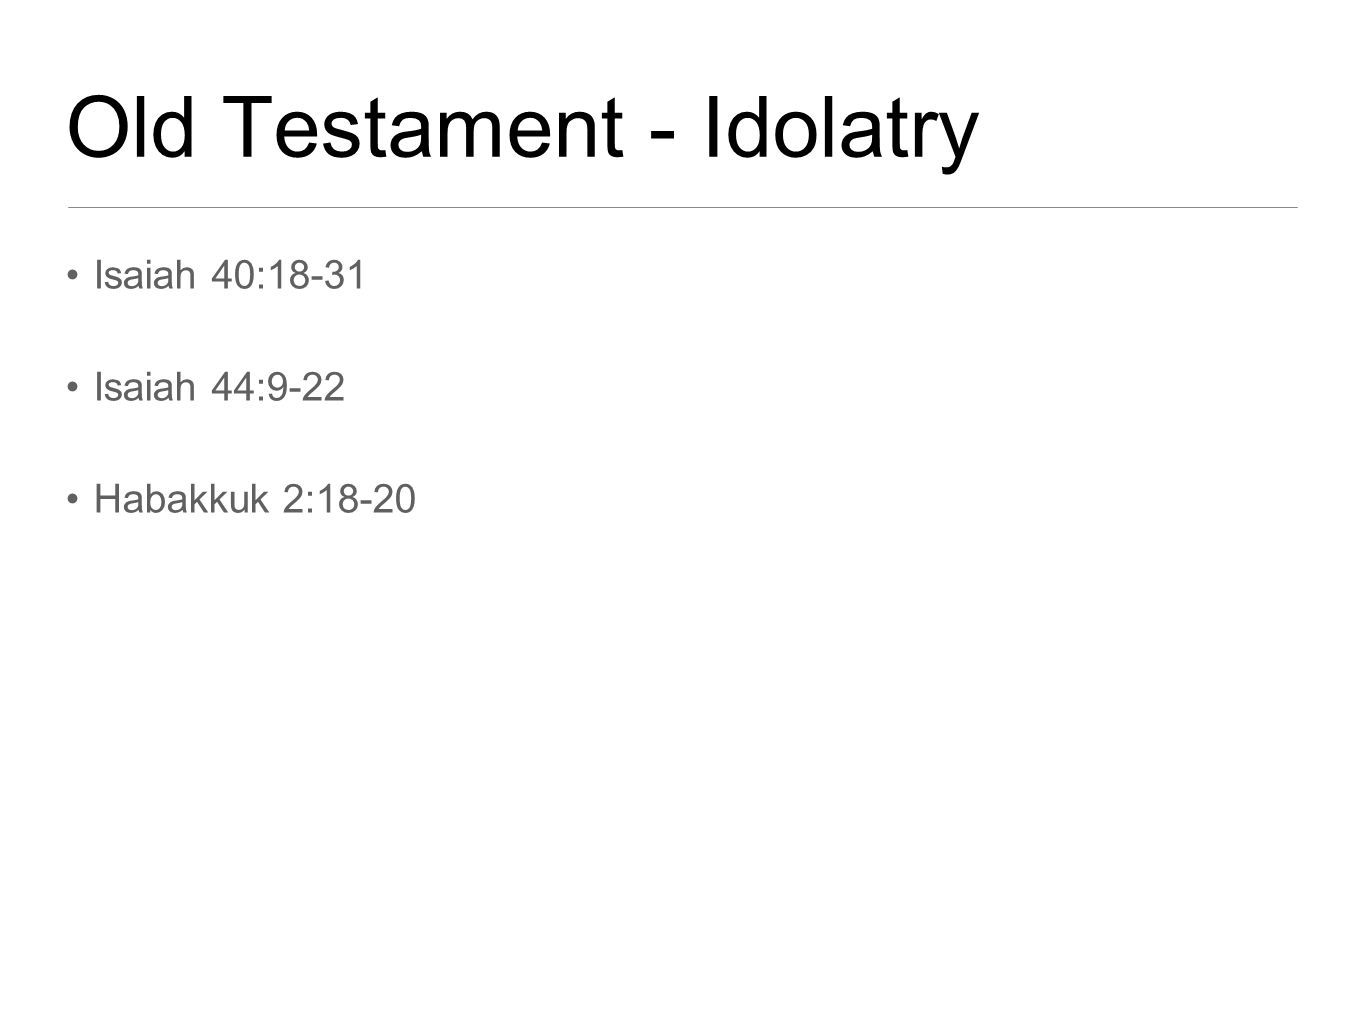 Old Testament - Idolatry Isaiah 40:18-31 Isaiah 44:9-22 Habakkuk 2:18-20